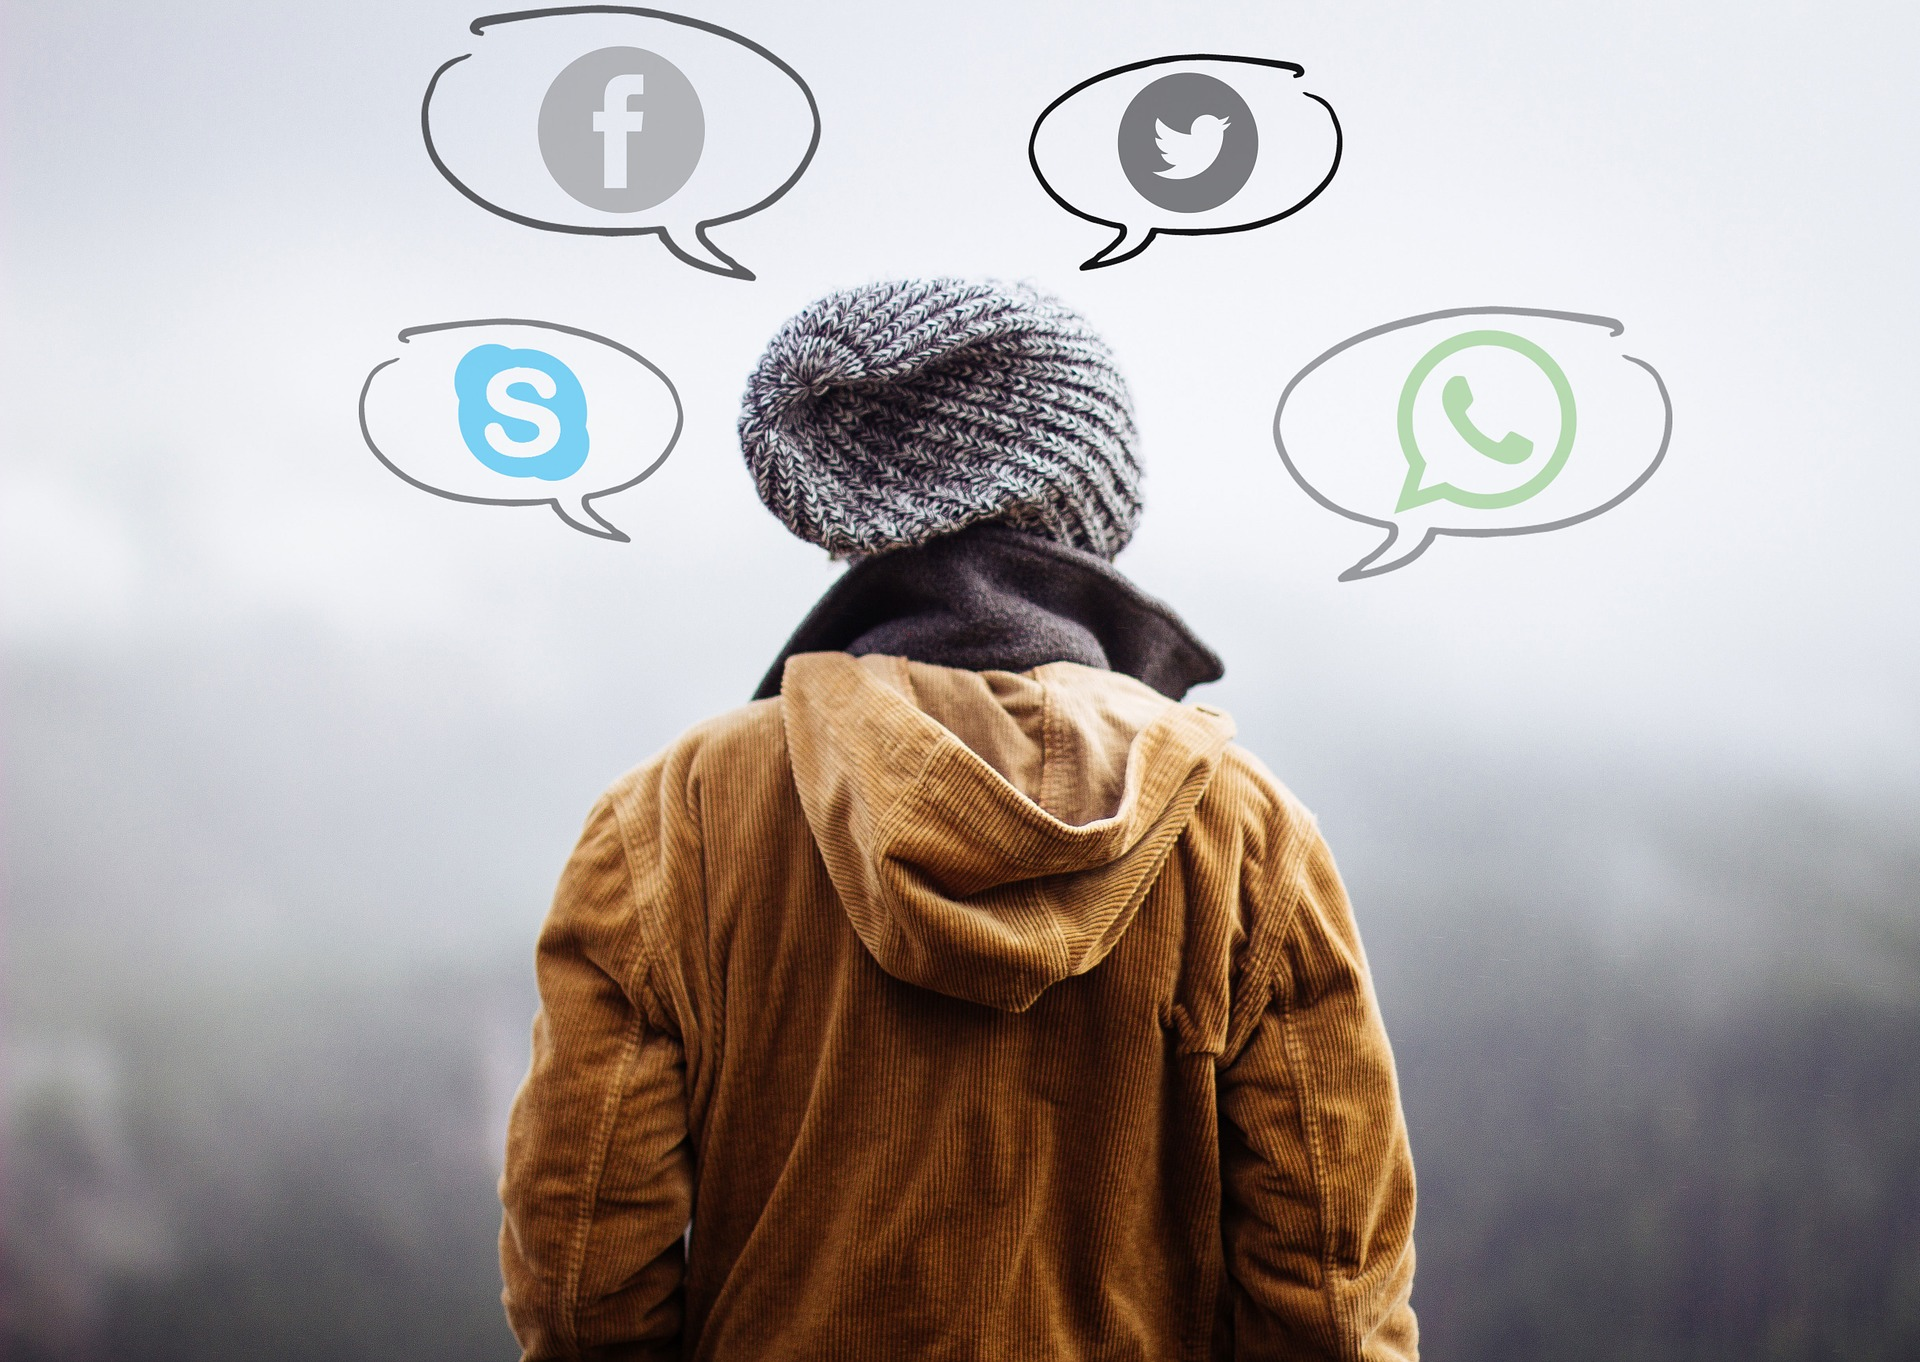 The art of being social - Social trends, conversations and marketing blueprints